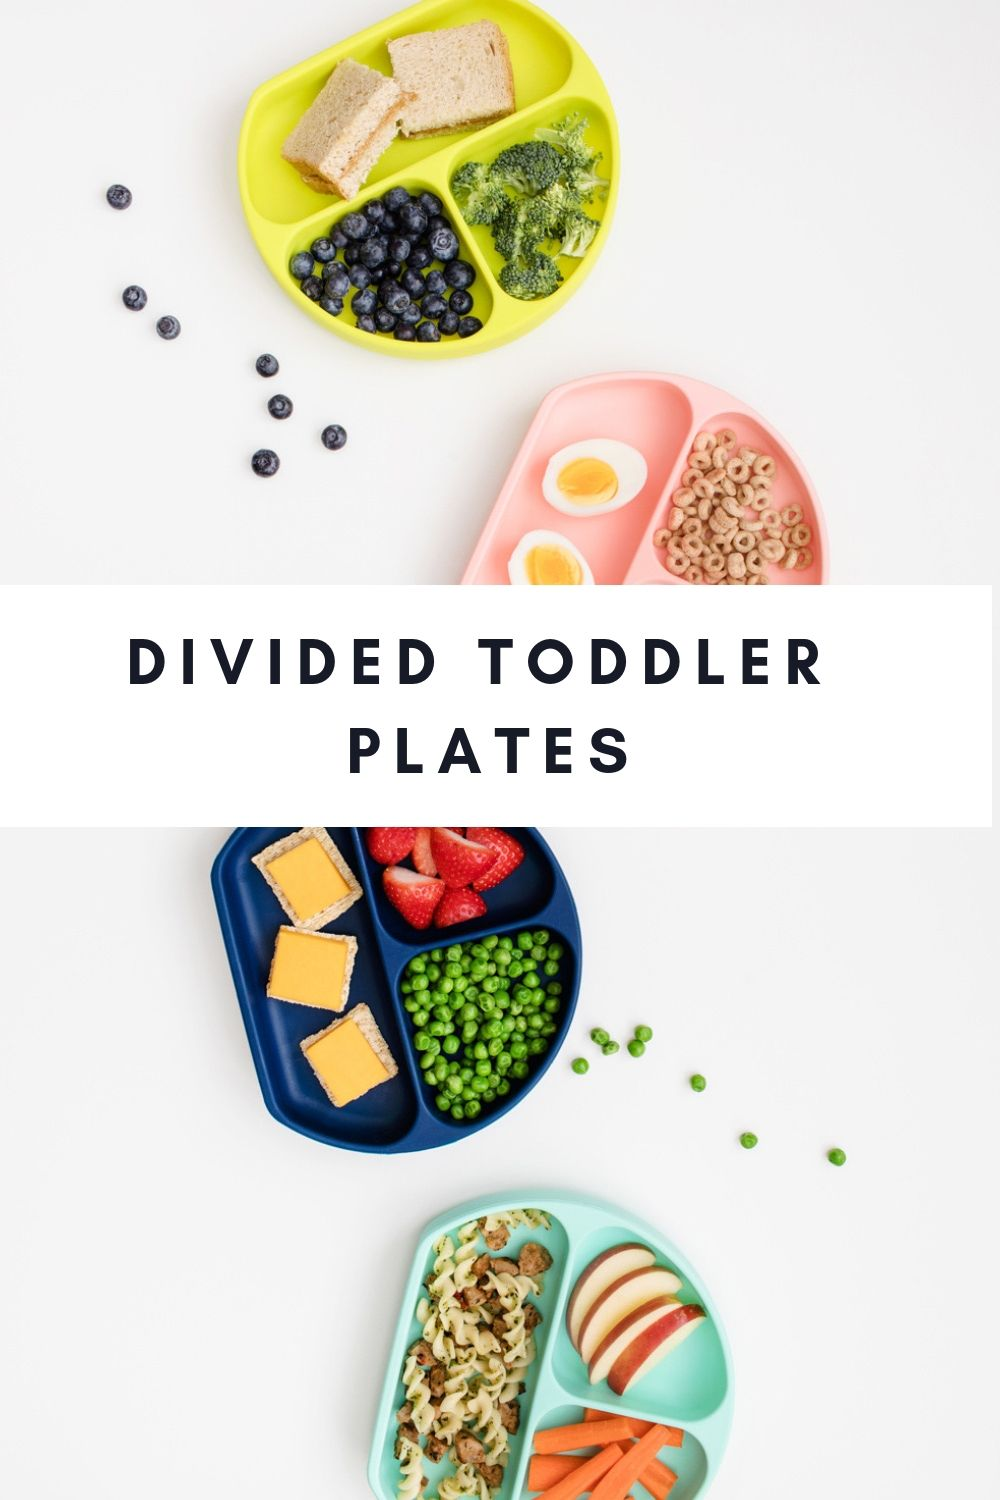 Make everyone at the table smile with these colorful